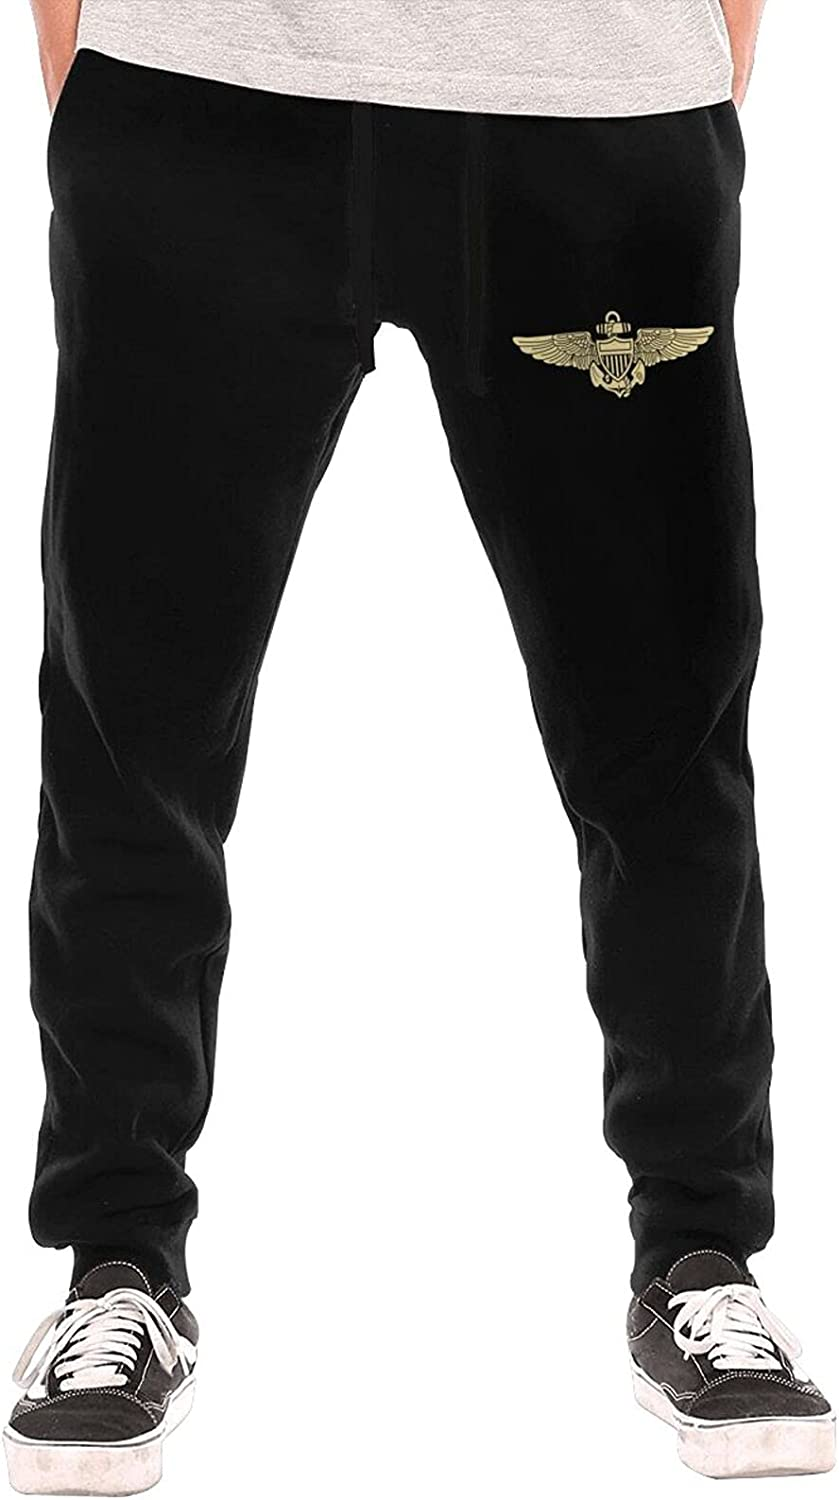 Constantyou Naval Animer and price revision Aviation Choice Insignia Sweatpants Pants Men Jogger